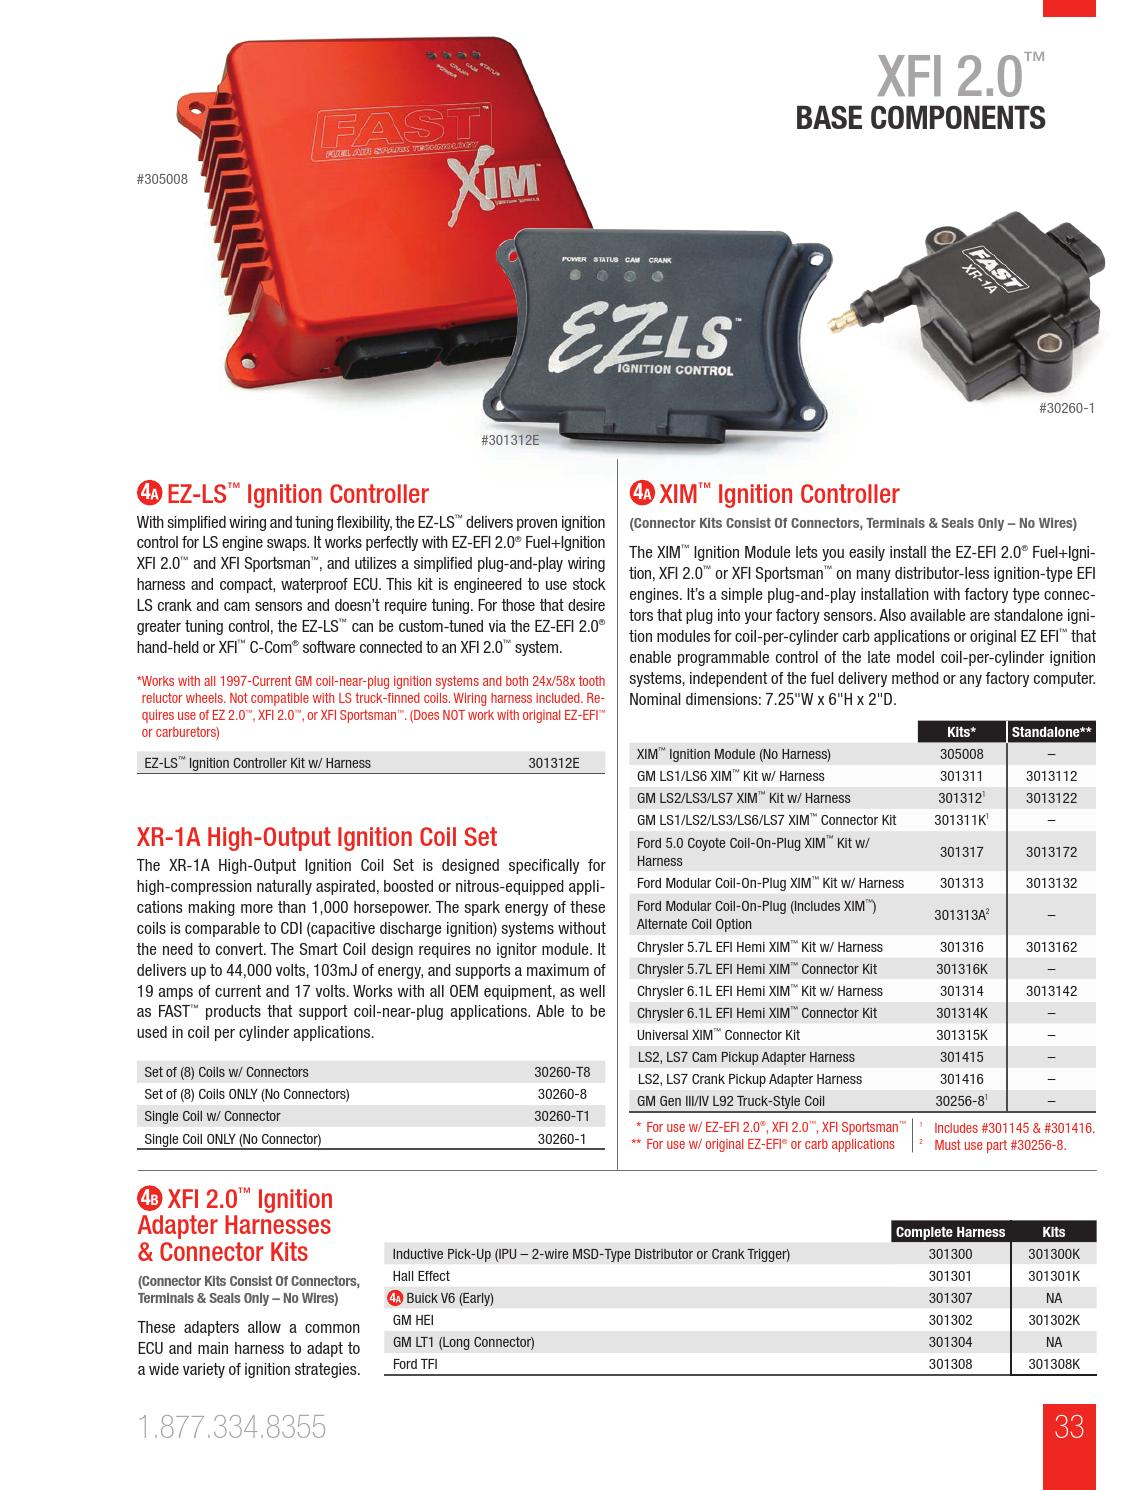 2016 FAST Master Catalog by COMP Performance Group™ - issuu Fast X Fi Wiring Harness on battery harness, radio harness, suspension harness, oxygen sensor extension harness, fall protection harness, pet harness, maxi-seal harness, nakamichi harness, dog harness, safety harness, cable harness, alpine stereo harness, electrical harness, engine harness, amp bypass harness, pony harness, obd0 to obd1 conversion harness,